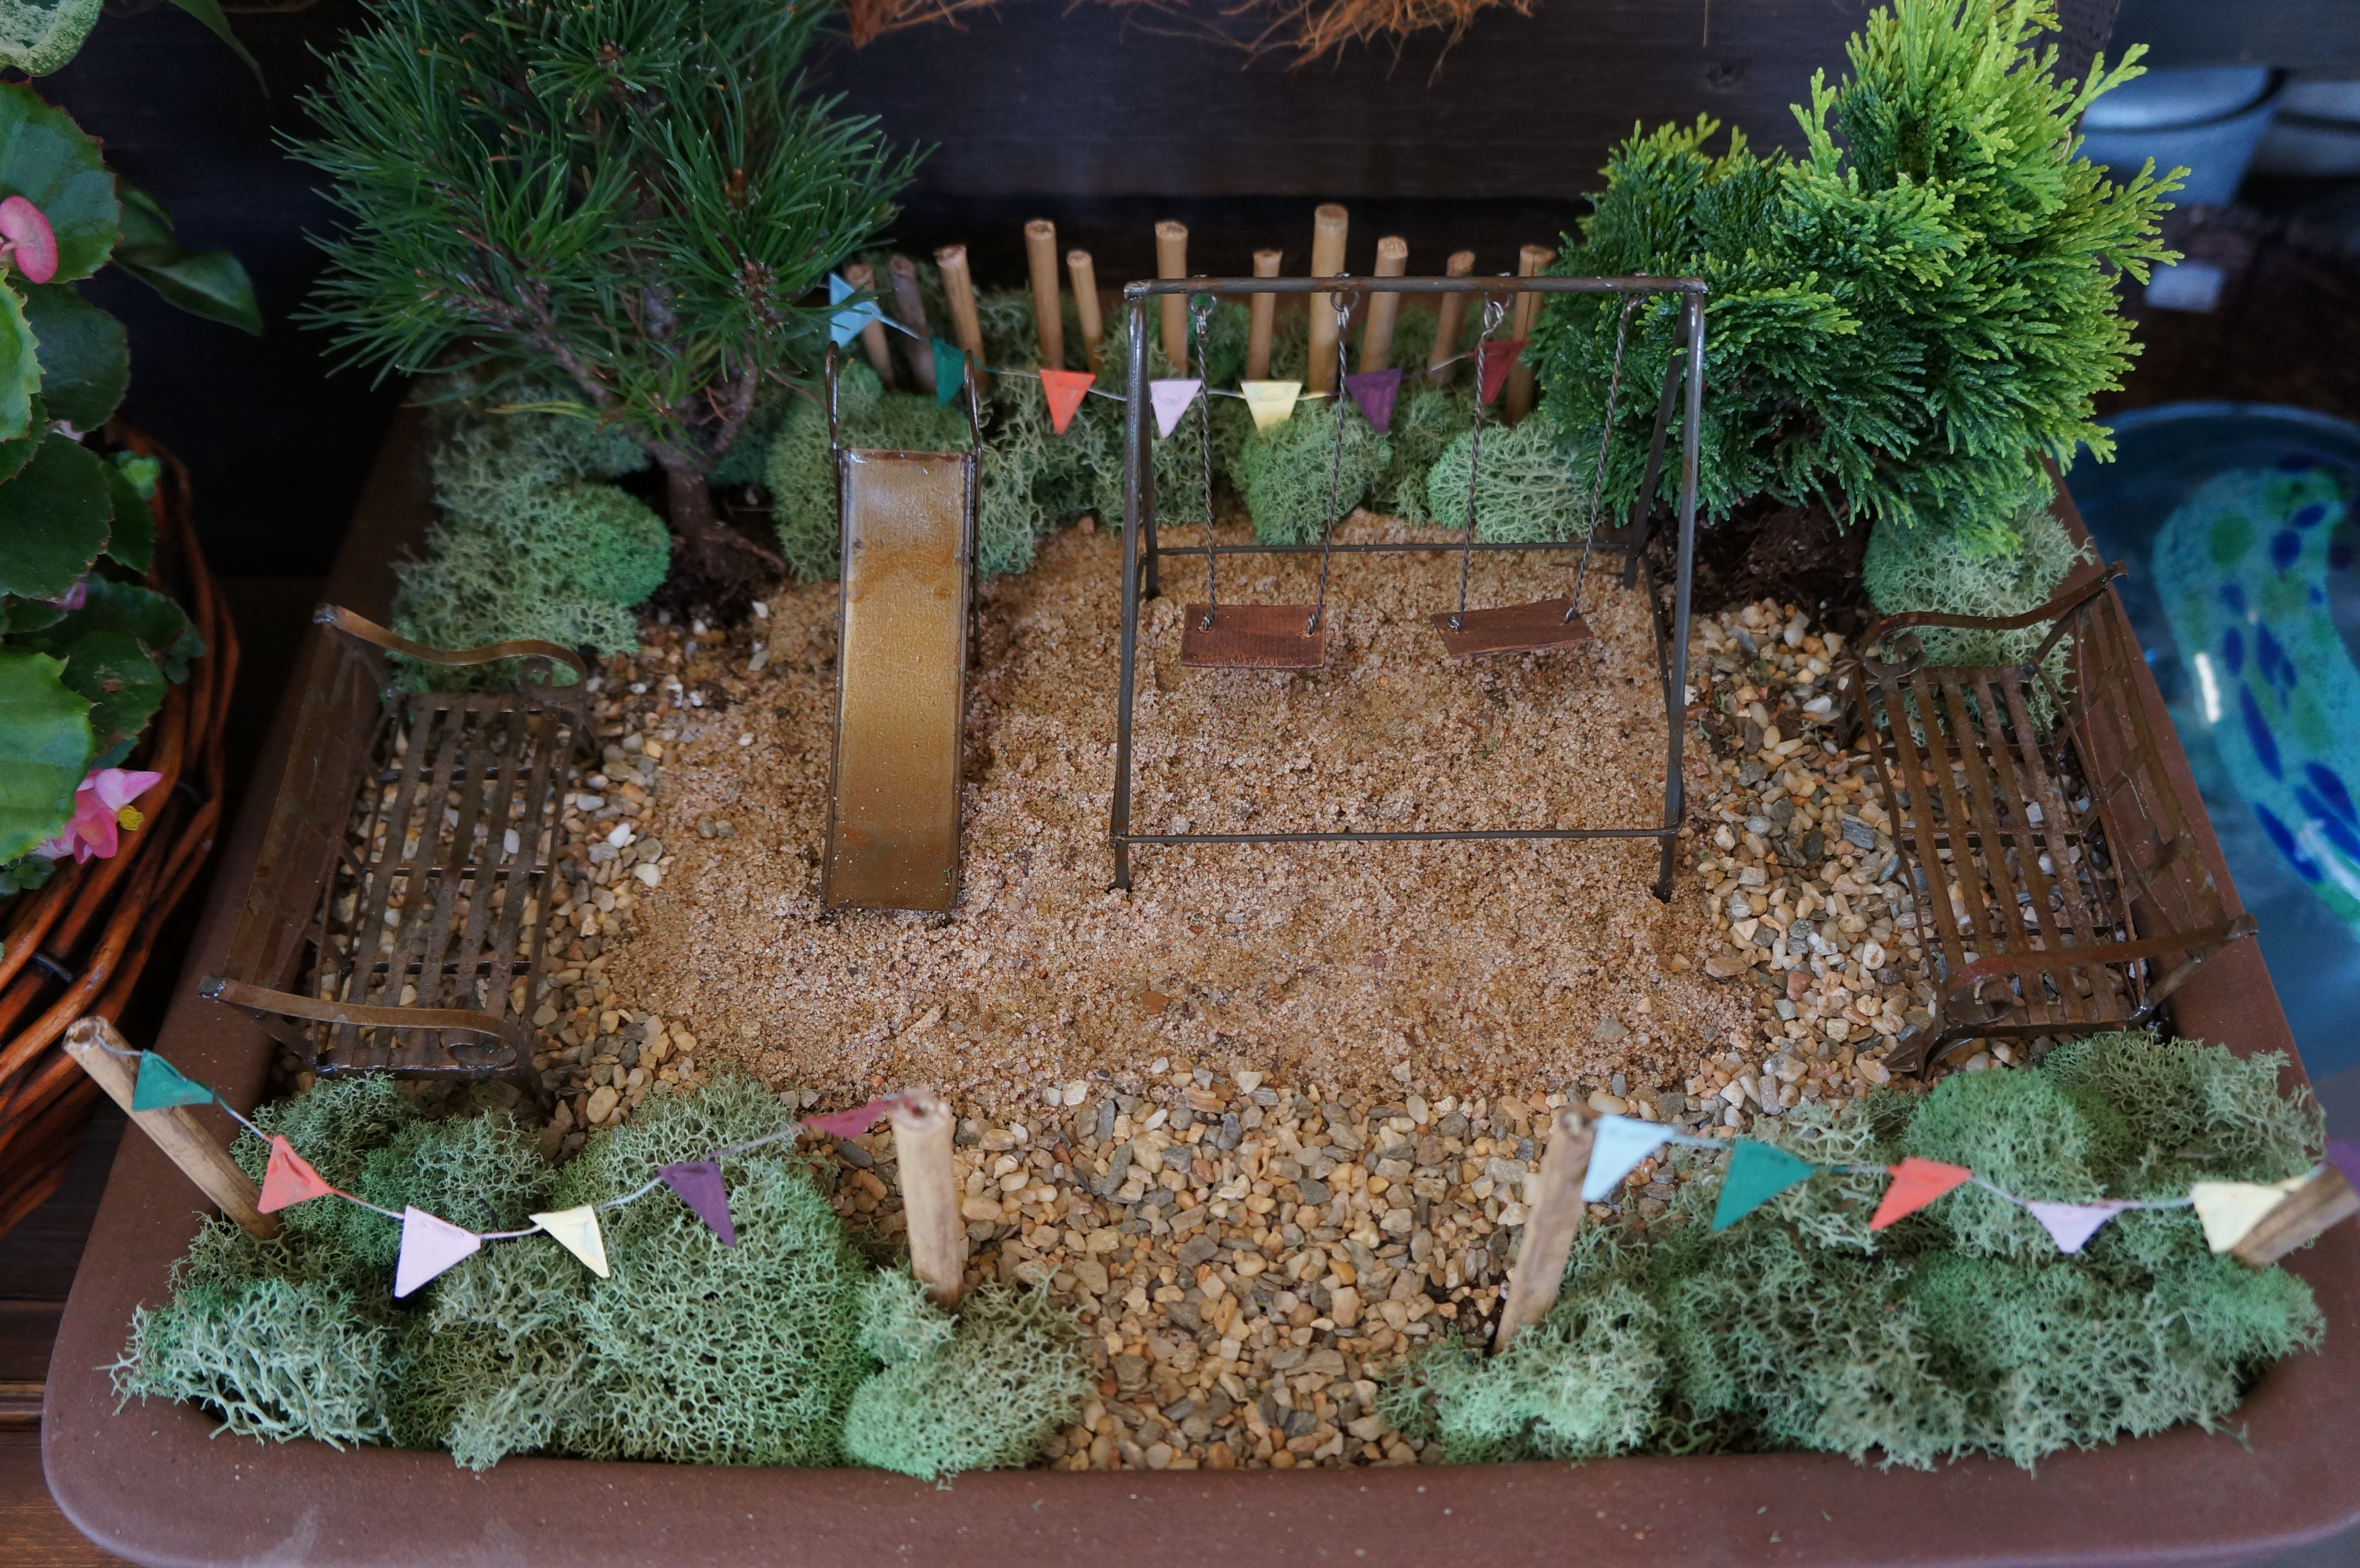 they skys the limit when it comes to fairy gardensall shapes sizes designsanything is possible here at westwood gardens we carry a wide selection of - How To Build A Fairy Garden